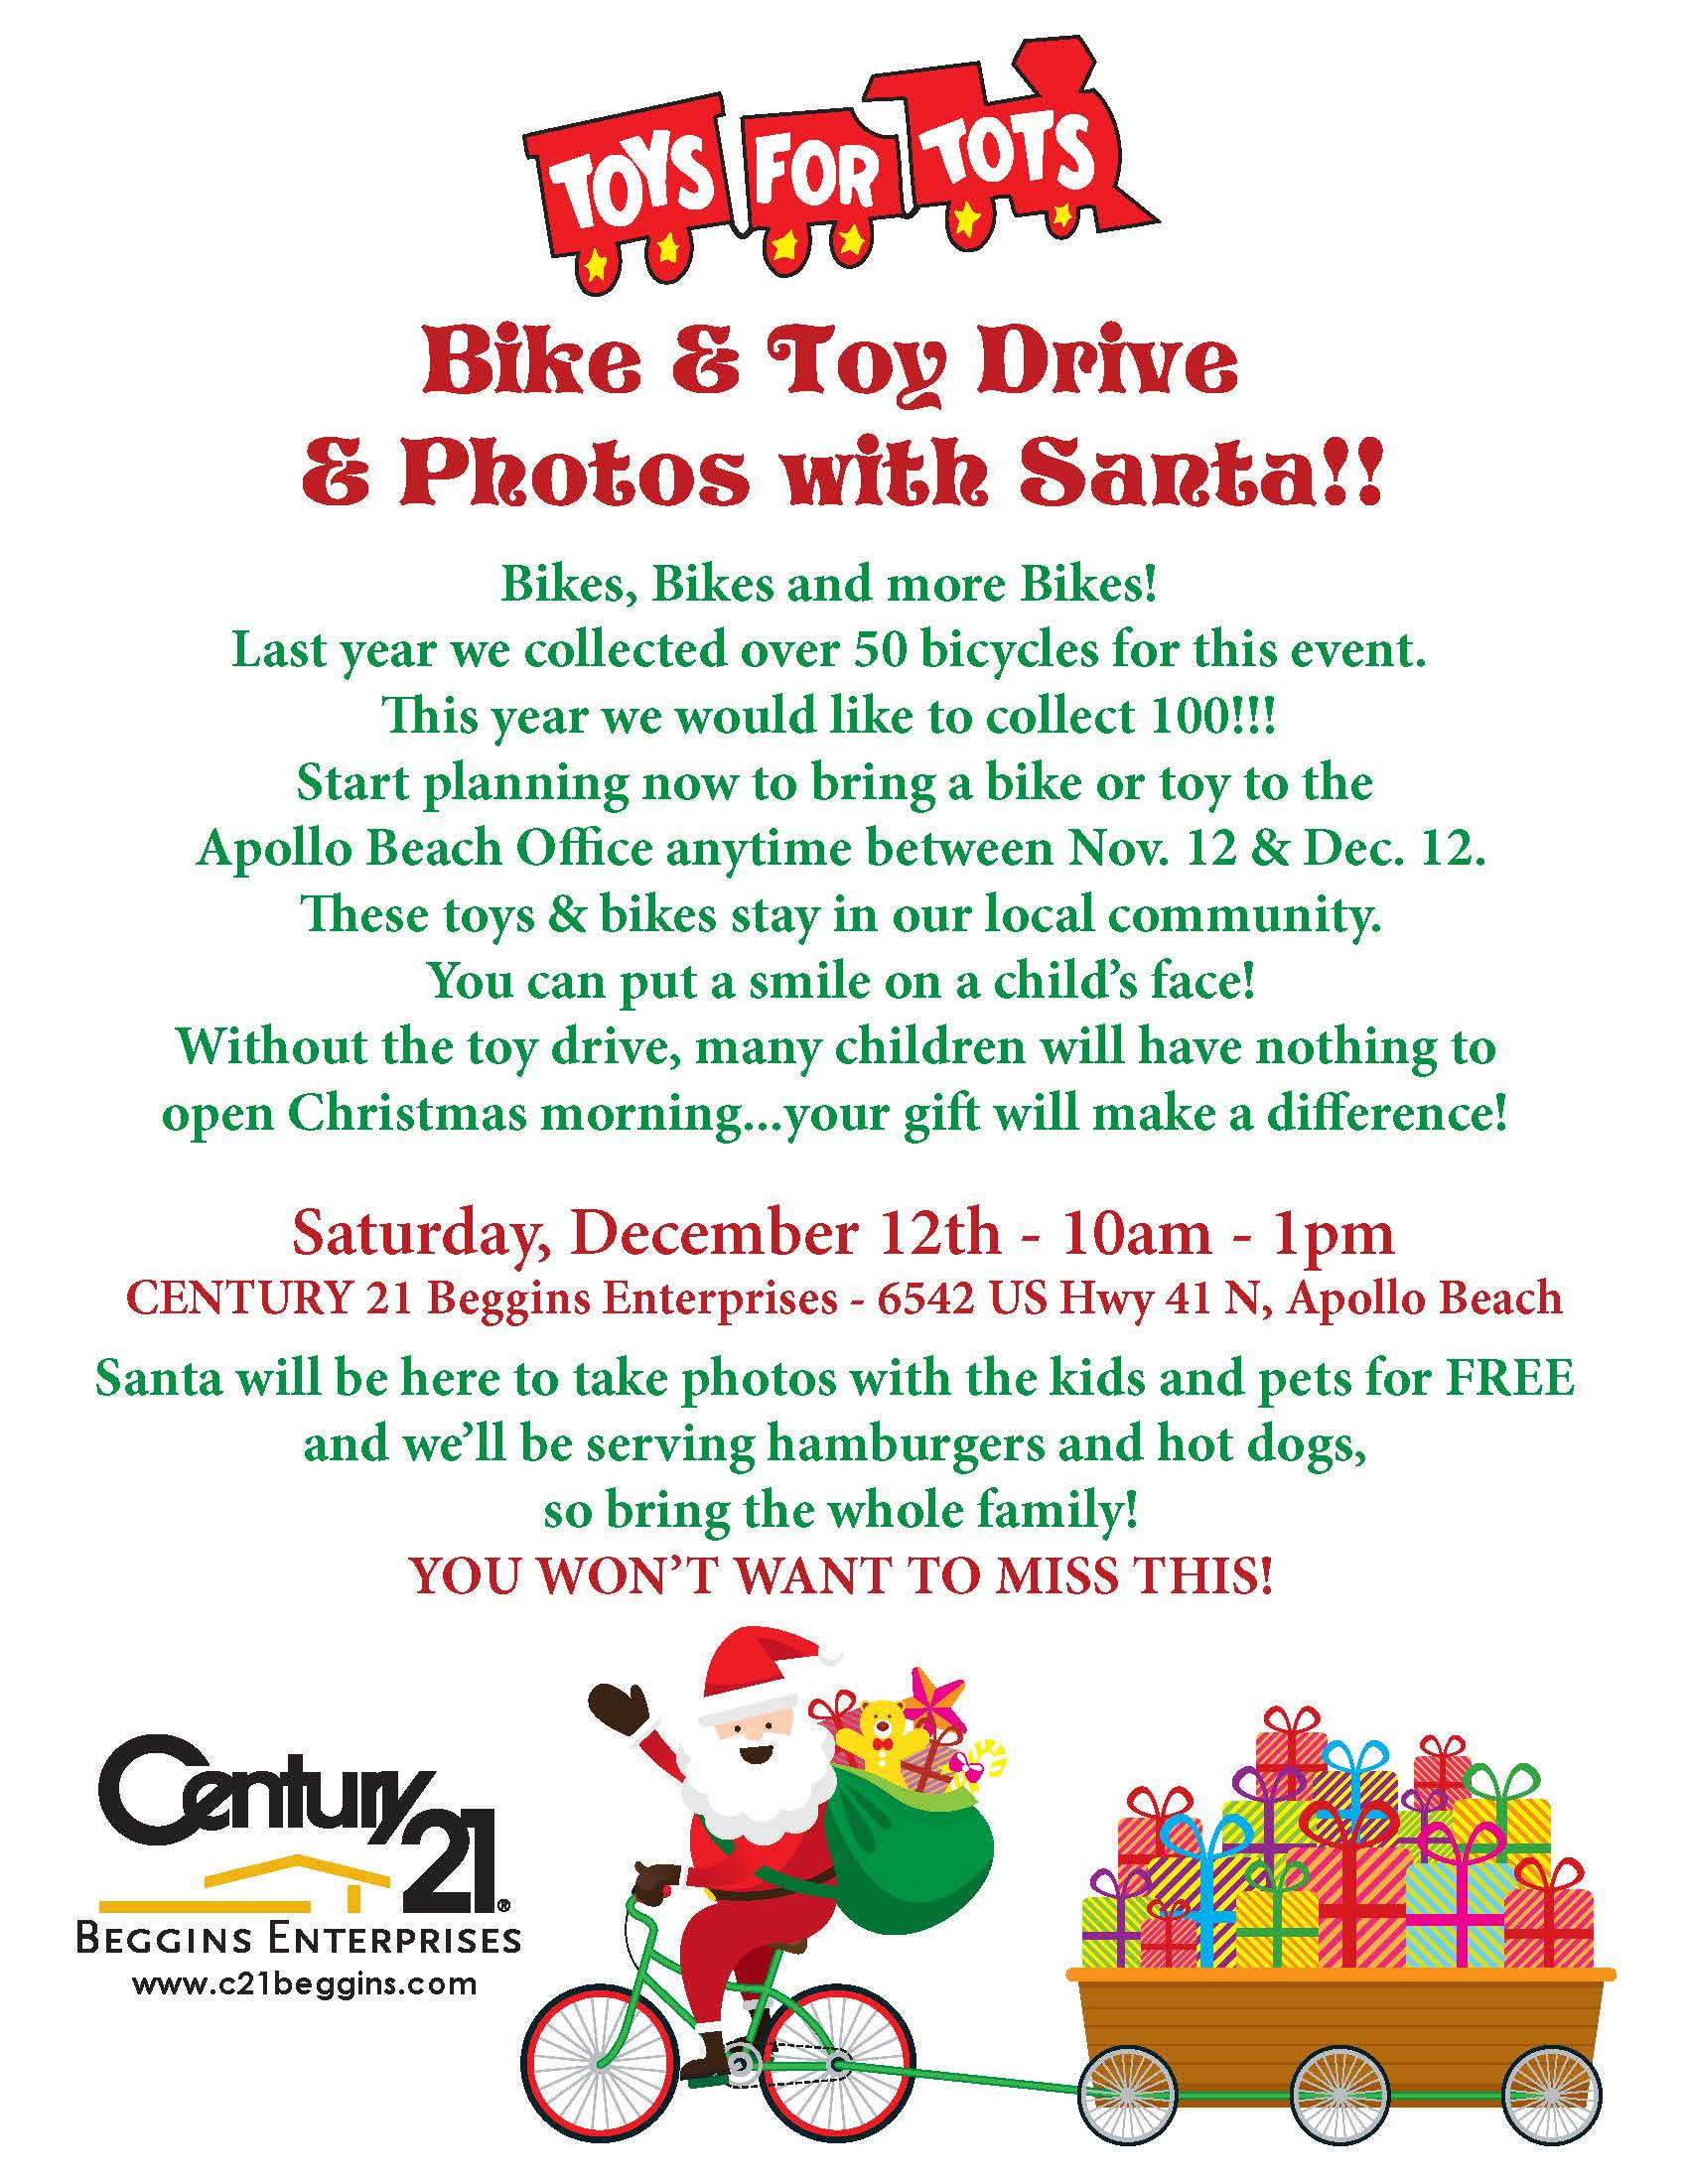 Toys For Tots Pdf : Toys for tots bike toy drive dec greater